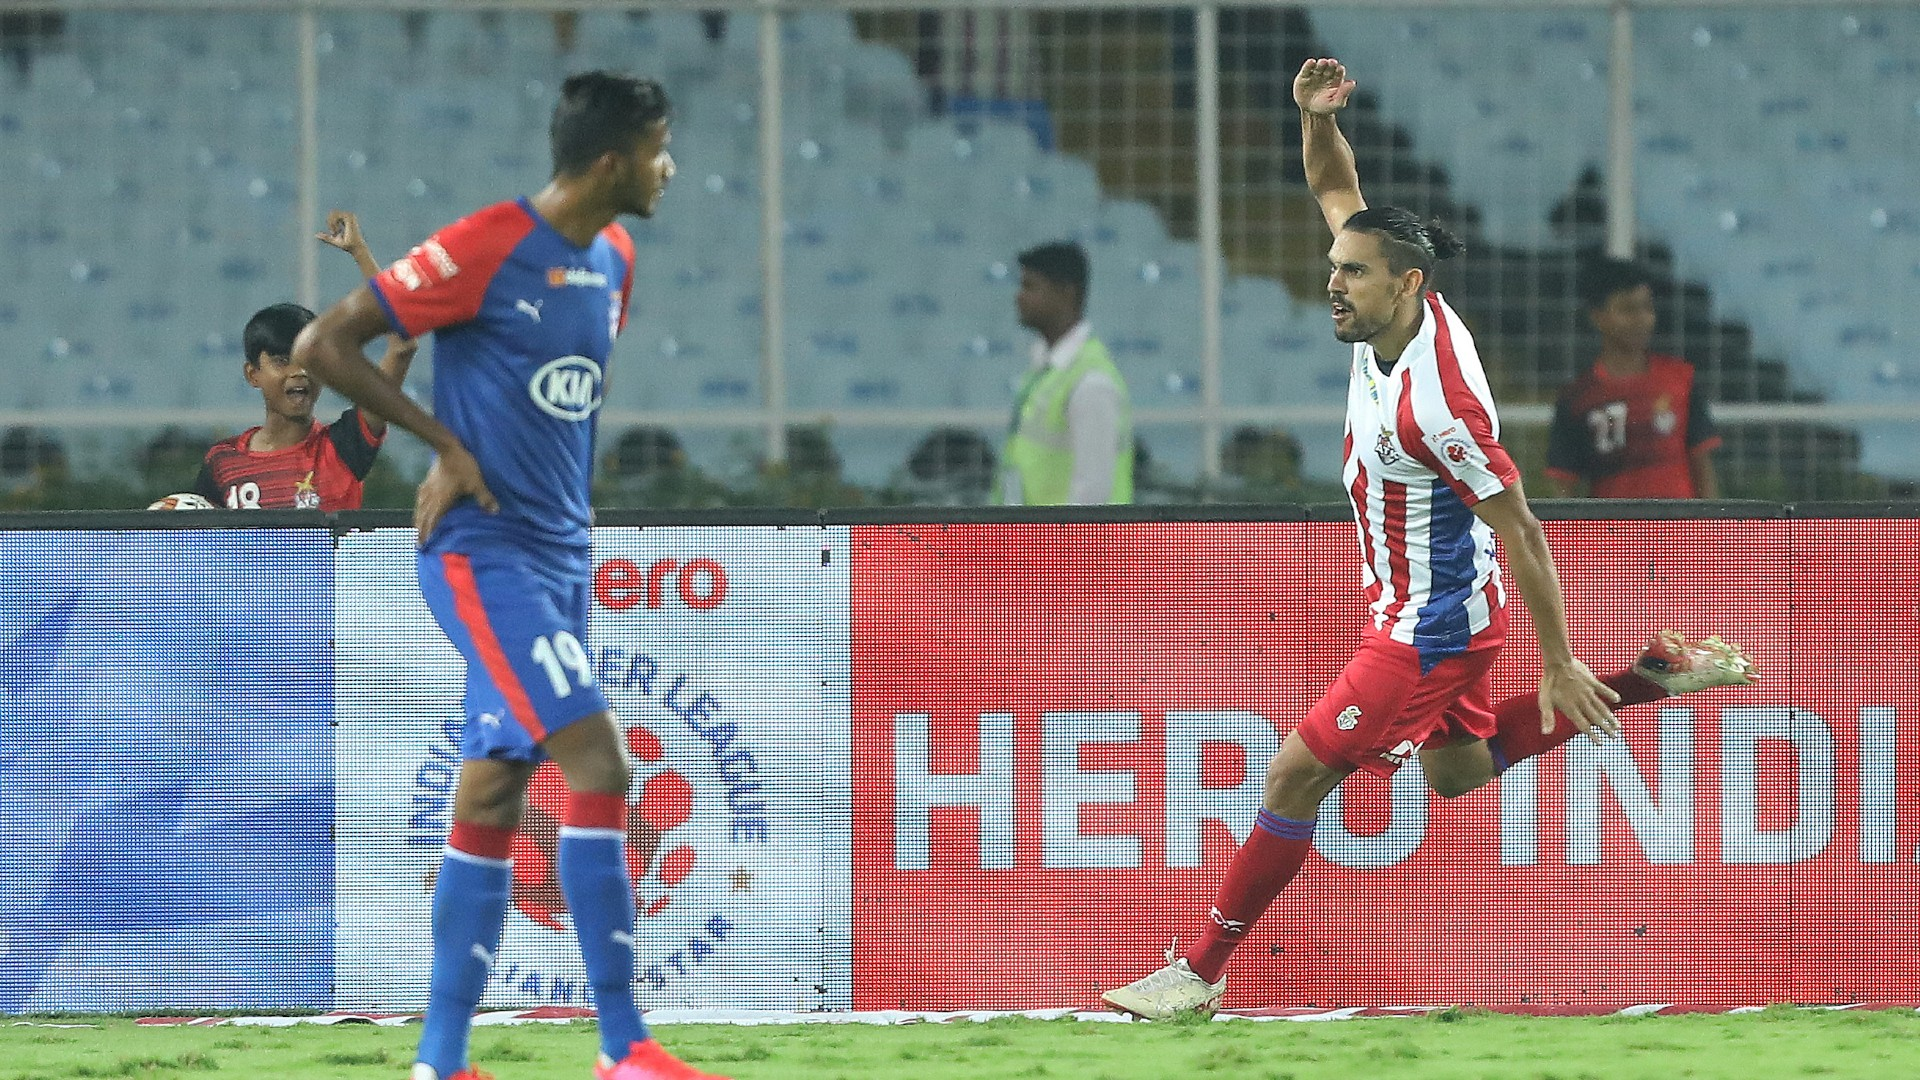 David Williams on ATK's contentious penalty: Tell me about Bengaluru's first goal